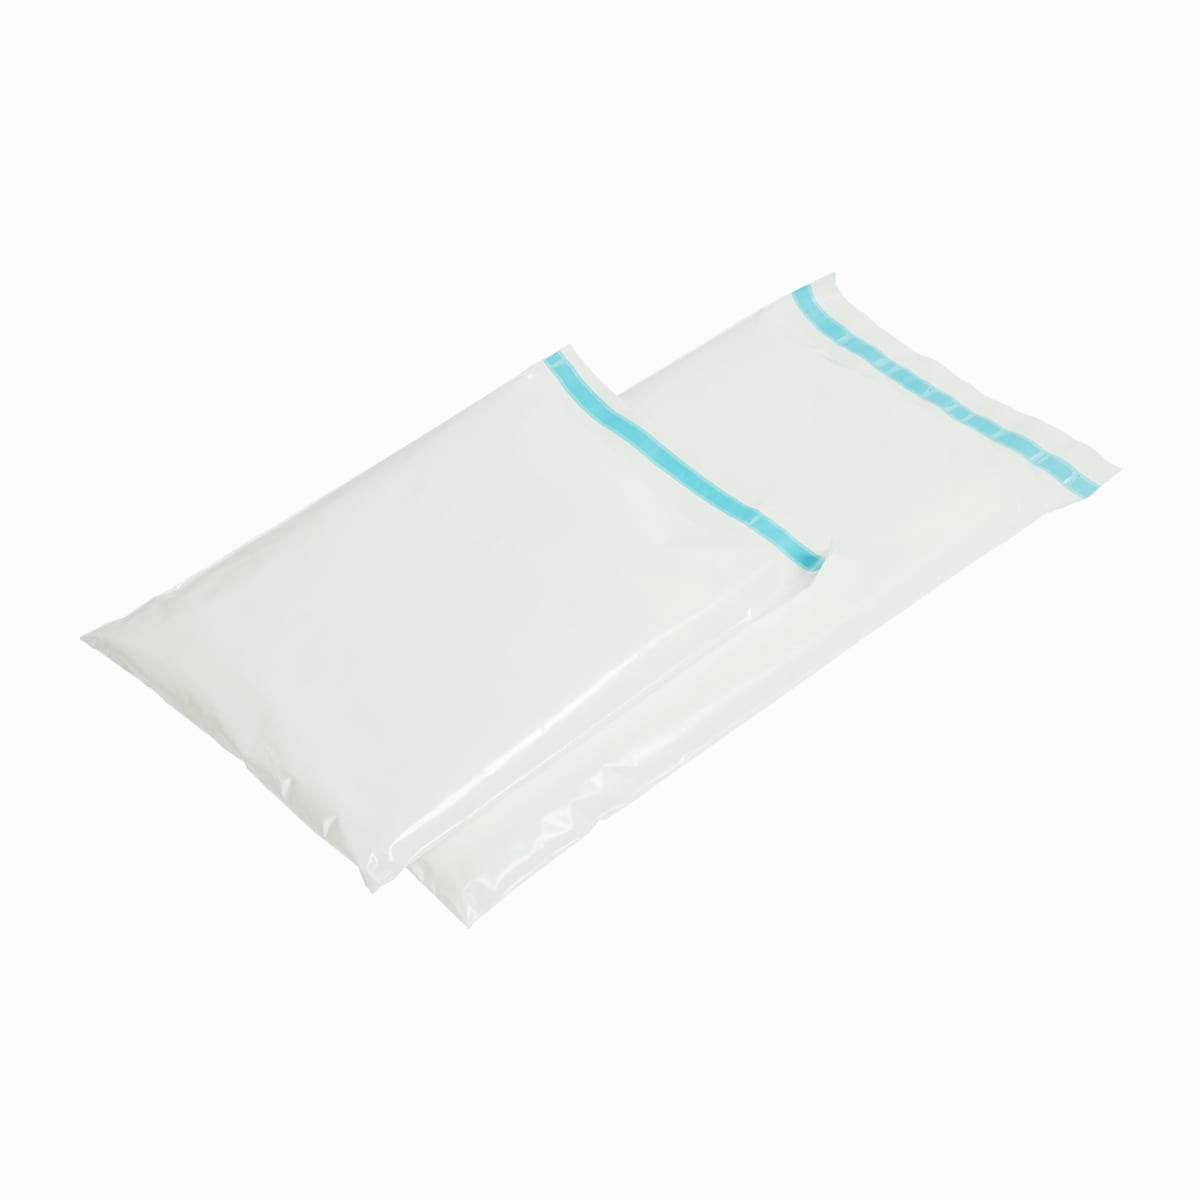 Sorbafreeze-Chilltek-Insulated-Envelope-all